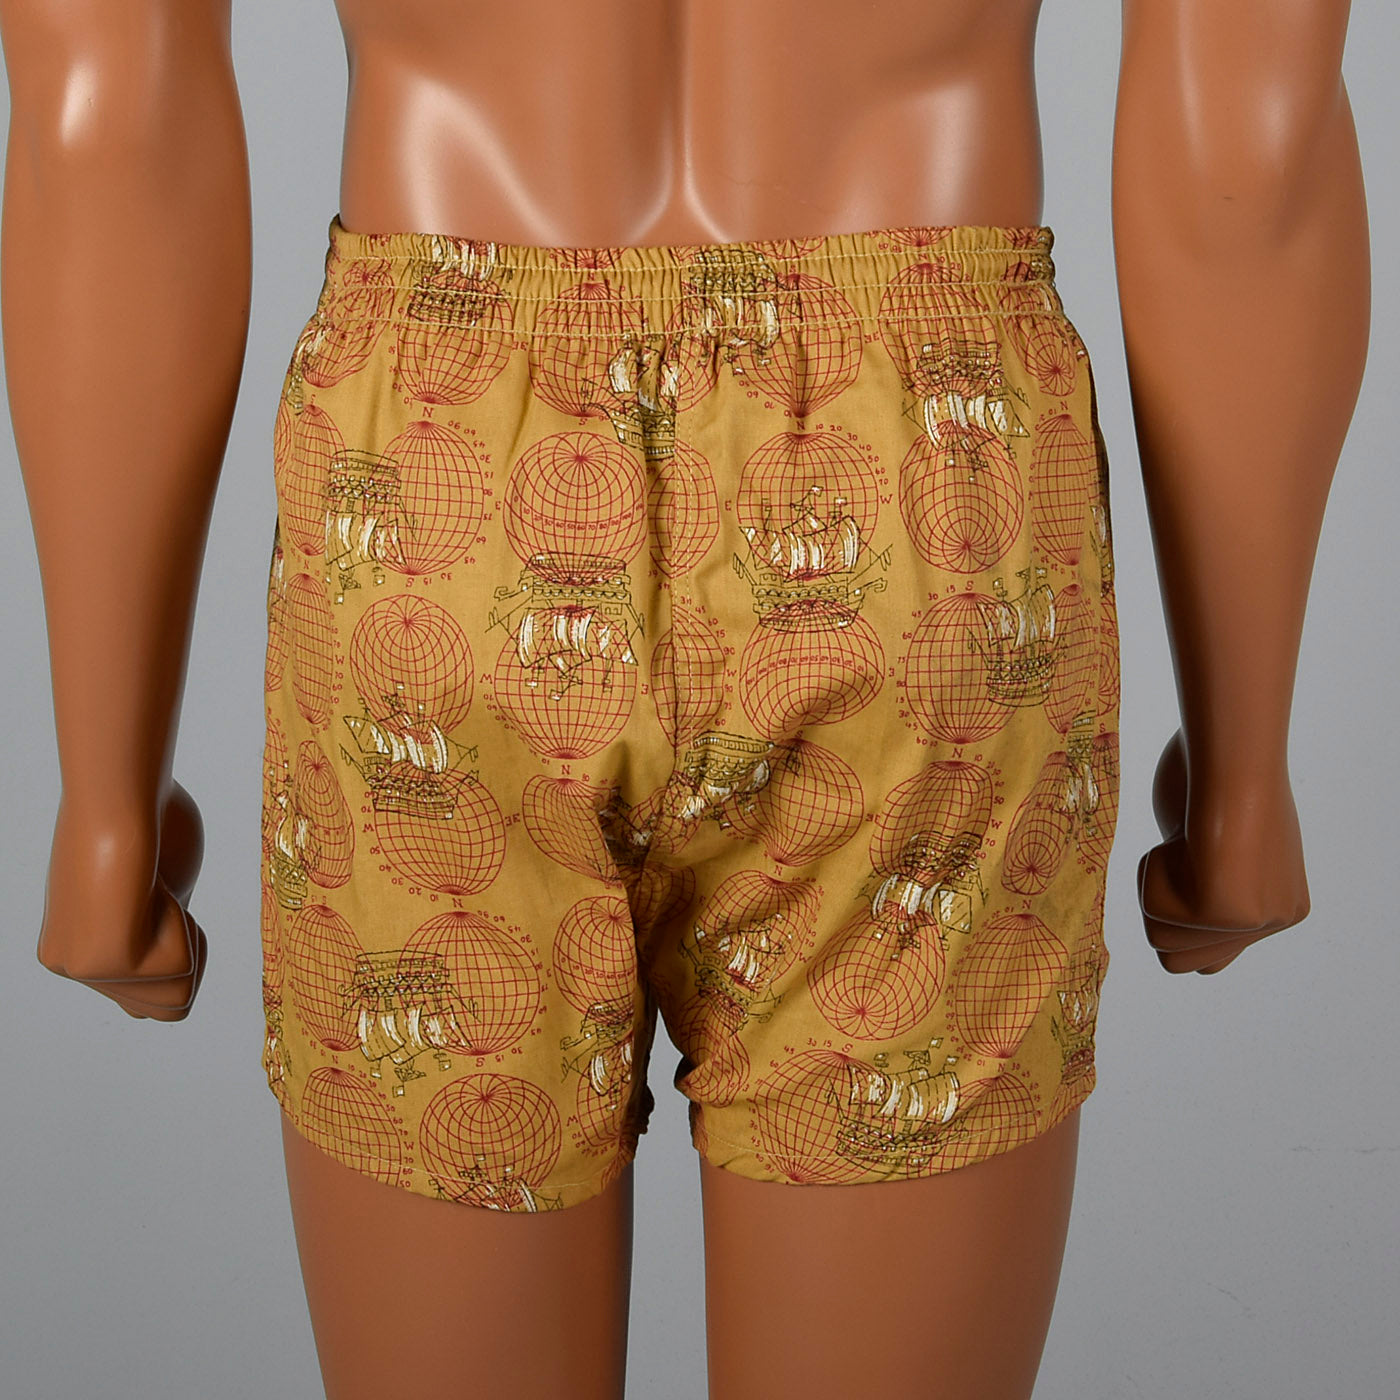 1950s Travel Themed Novelty Swim Trunks